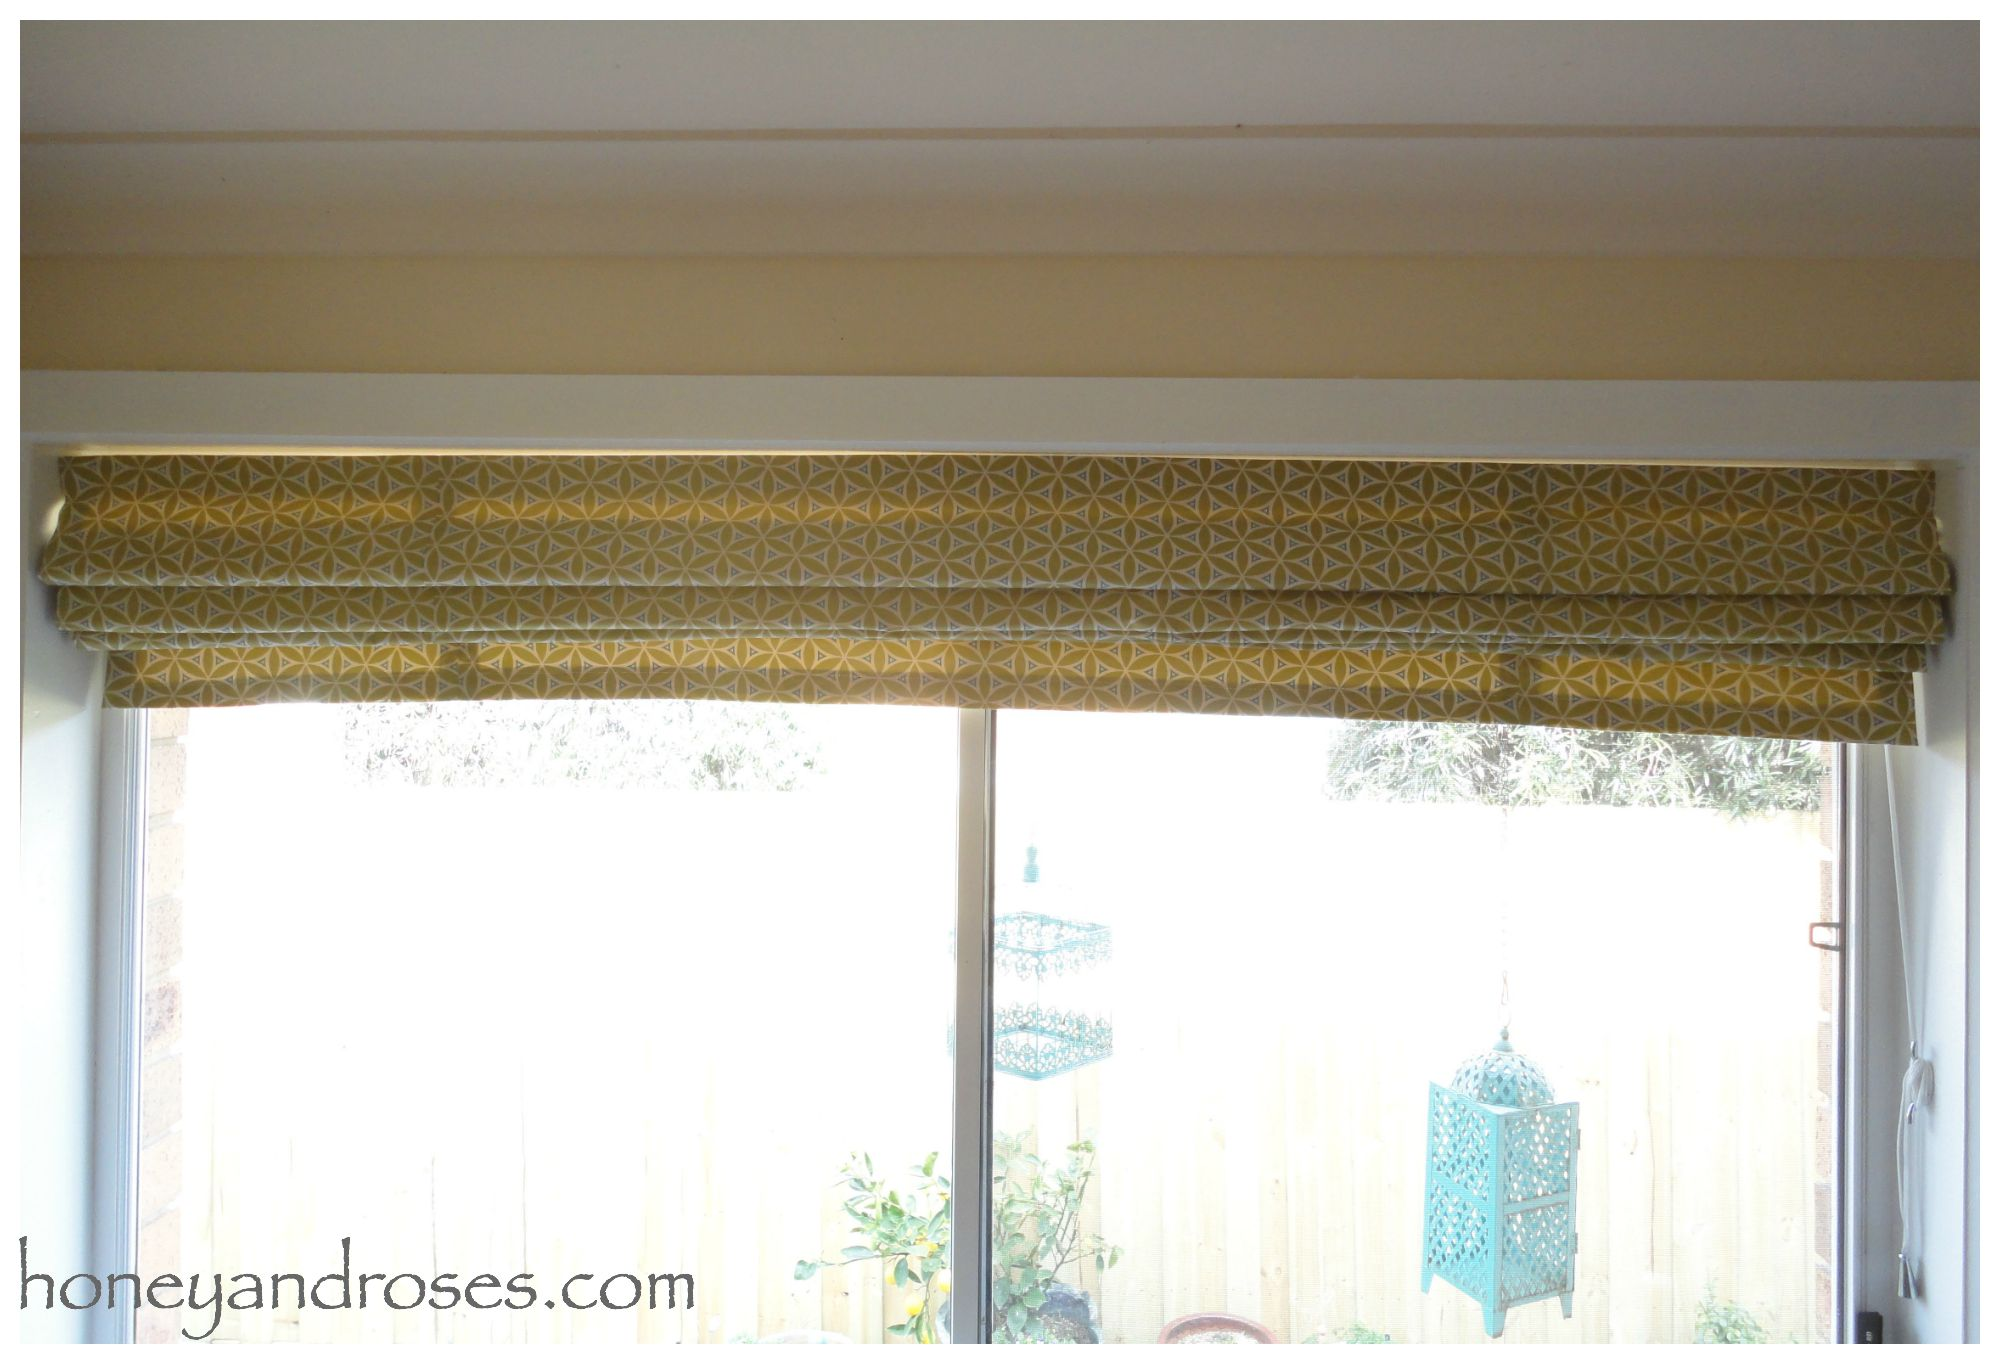 no that appealing diy light of functional horrifying mock gratify box dreadful value shades blinds charismatic builder ideas sew for beautiful valance impressive faux roman resembles awesome size relaxed shade full filtering non startling